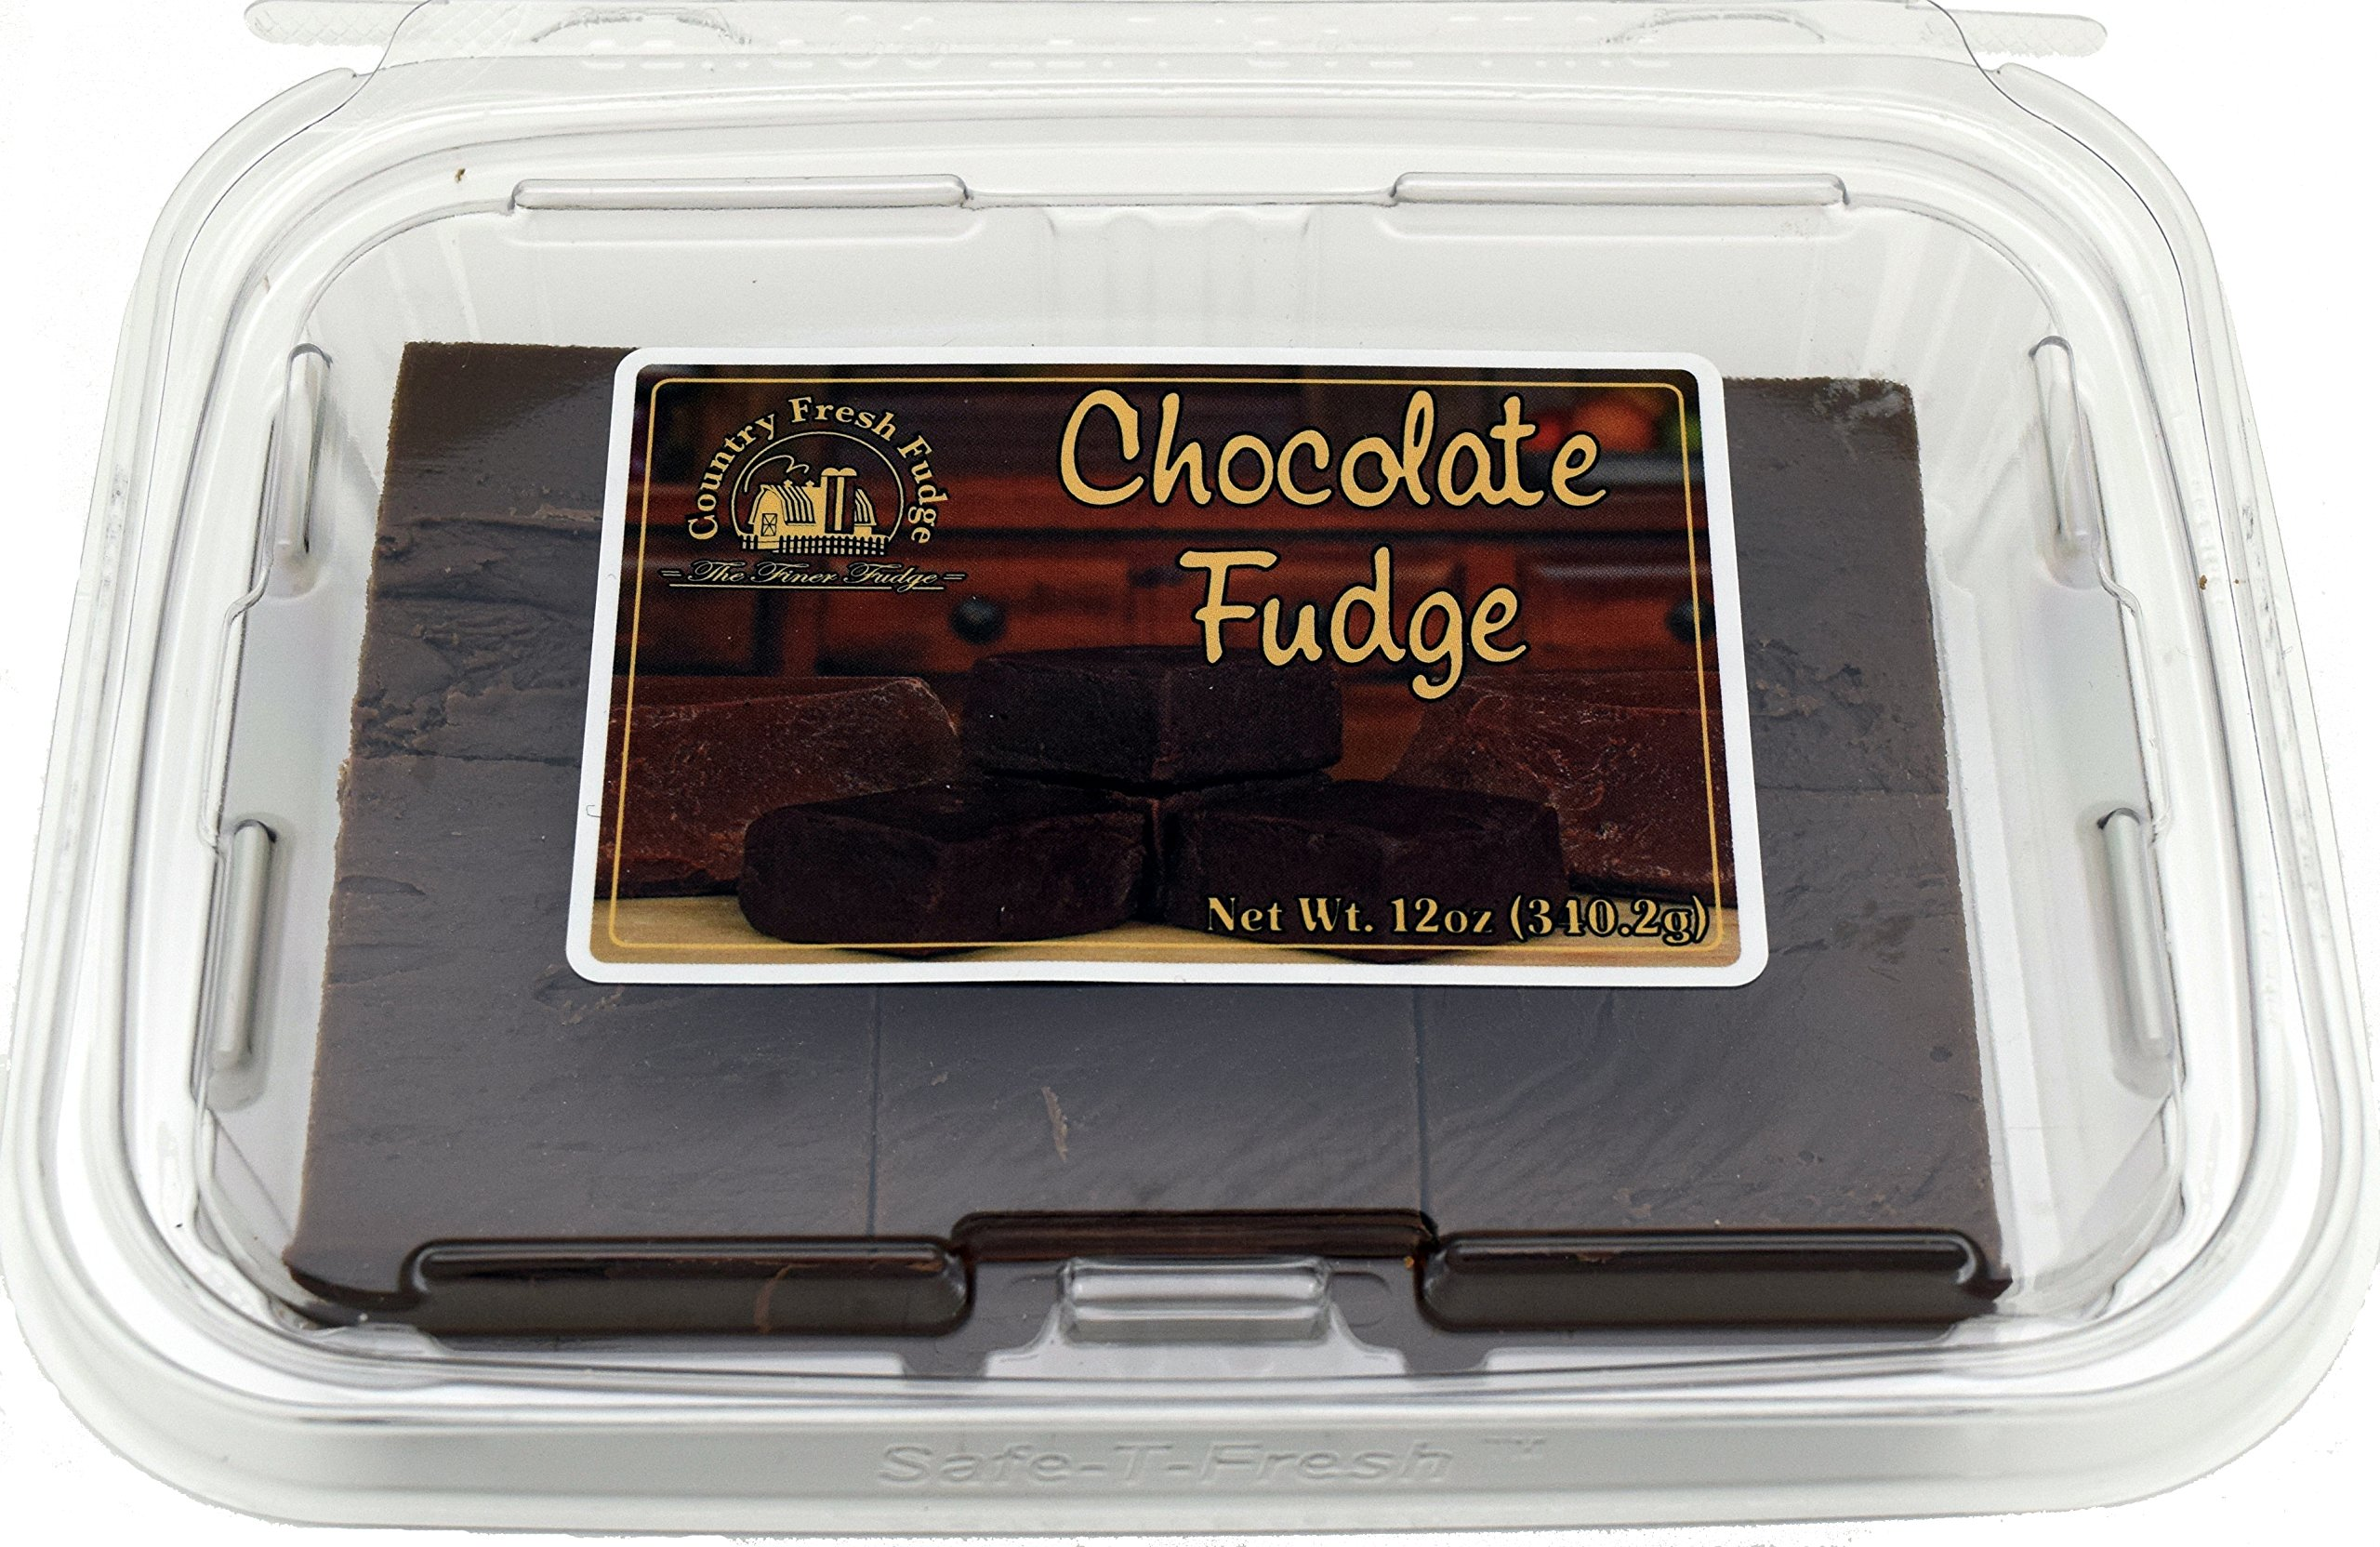 Country Fresh Fudge Chocolate, 6 Pound (Pack of 8) by Country Fresh Fudge